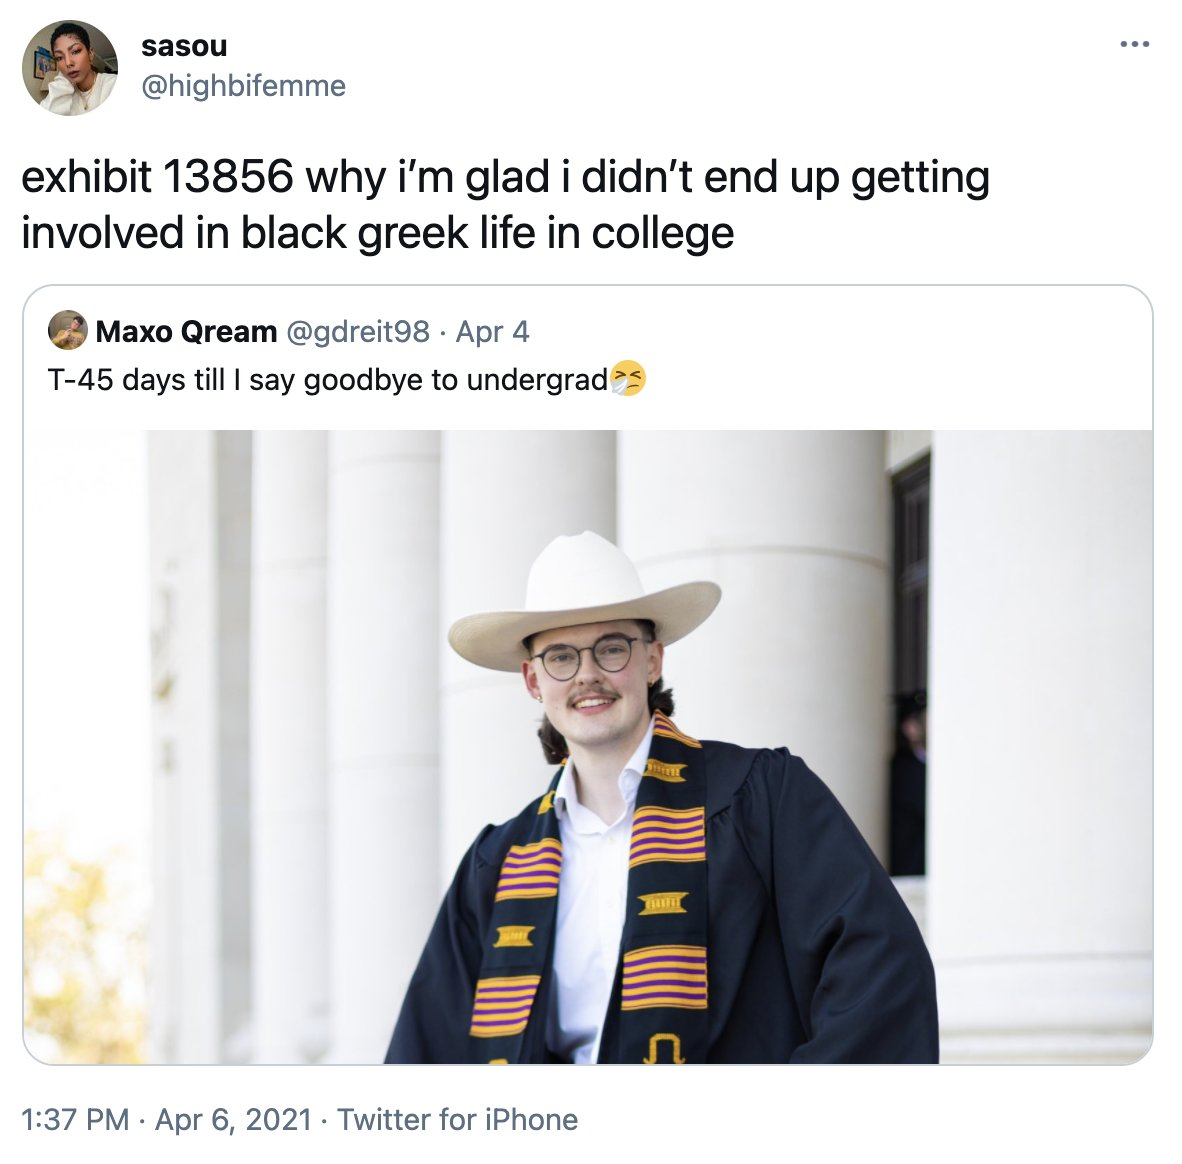 So lemme get this straight: - a white man gets his letters in a Black greek org - a Black woman states her personal opinion  - he tells her to shut the fuck up Did I get that right? So because Maxo Qream gets to take up space in a Black org, he gets to insult Black women?